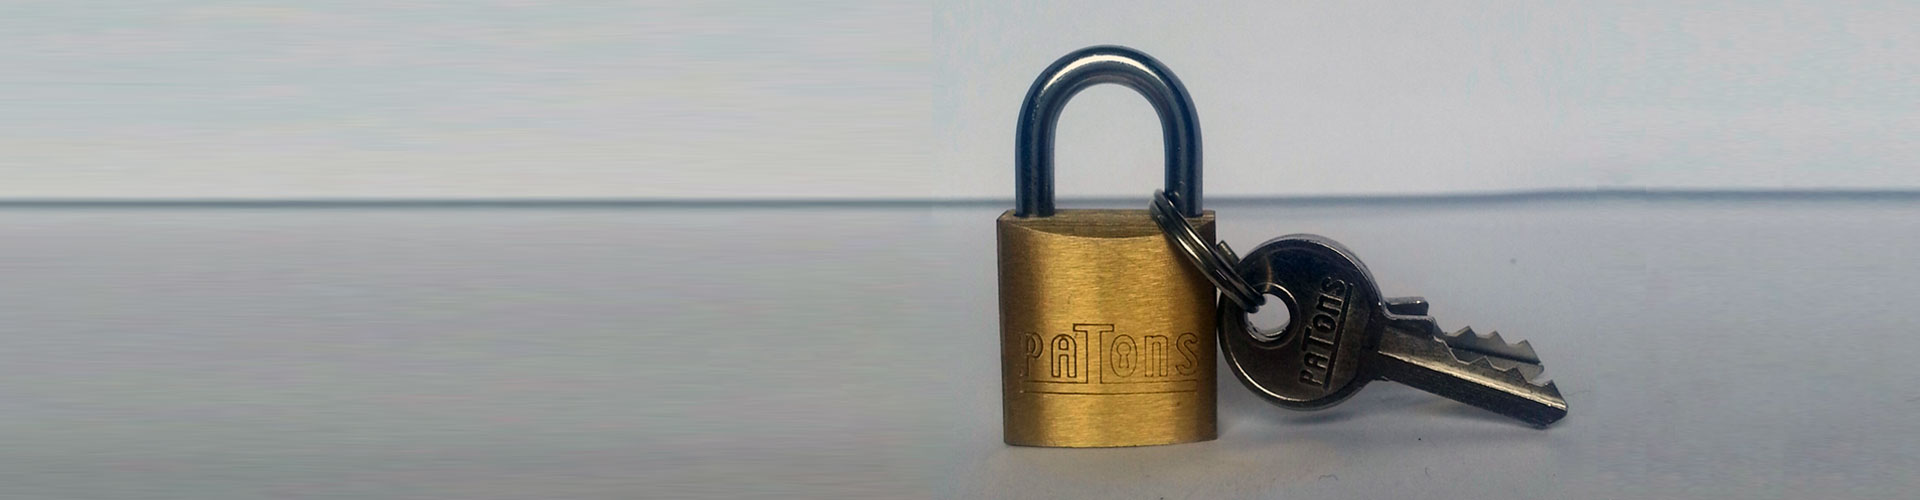 patons-security-padlocks